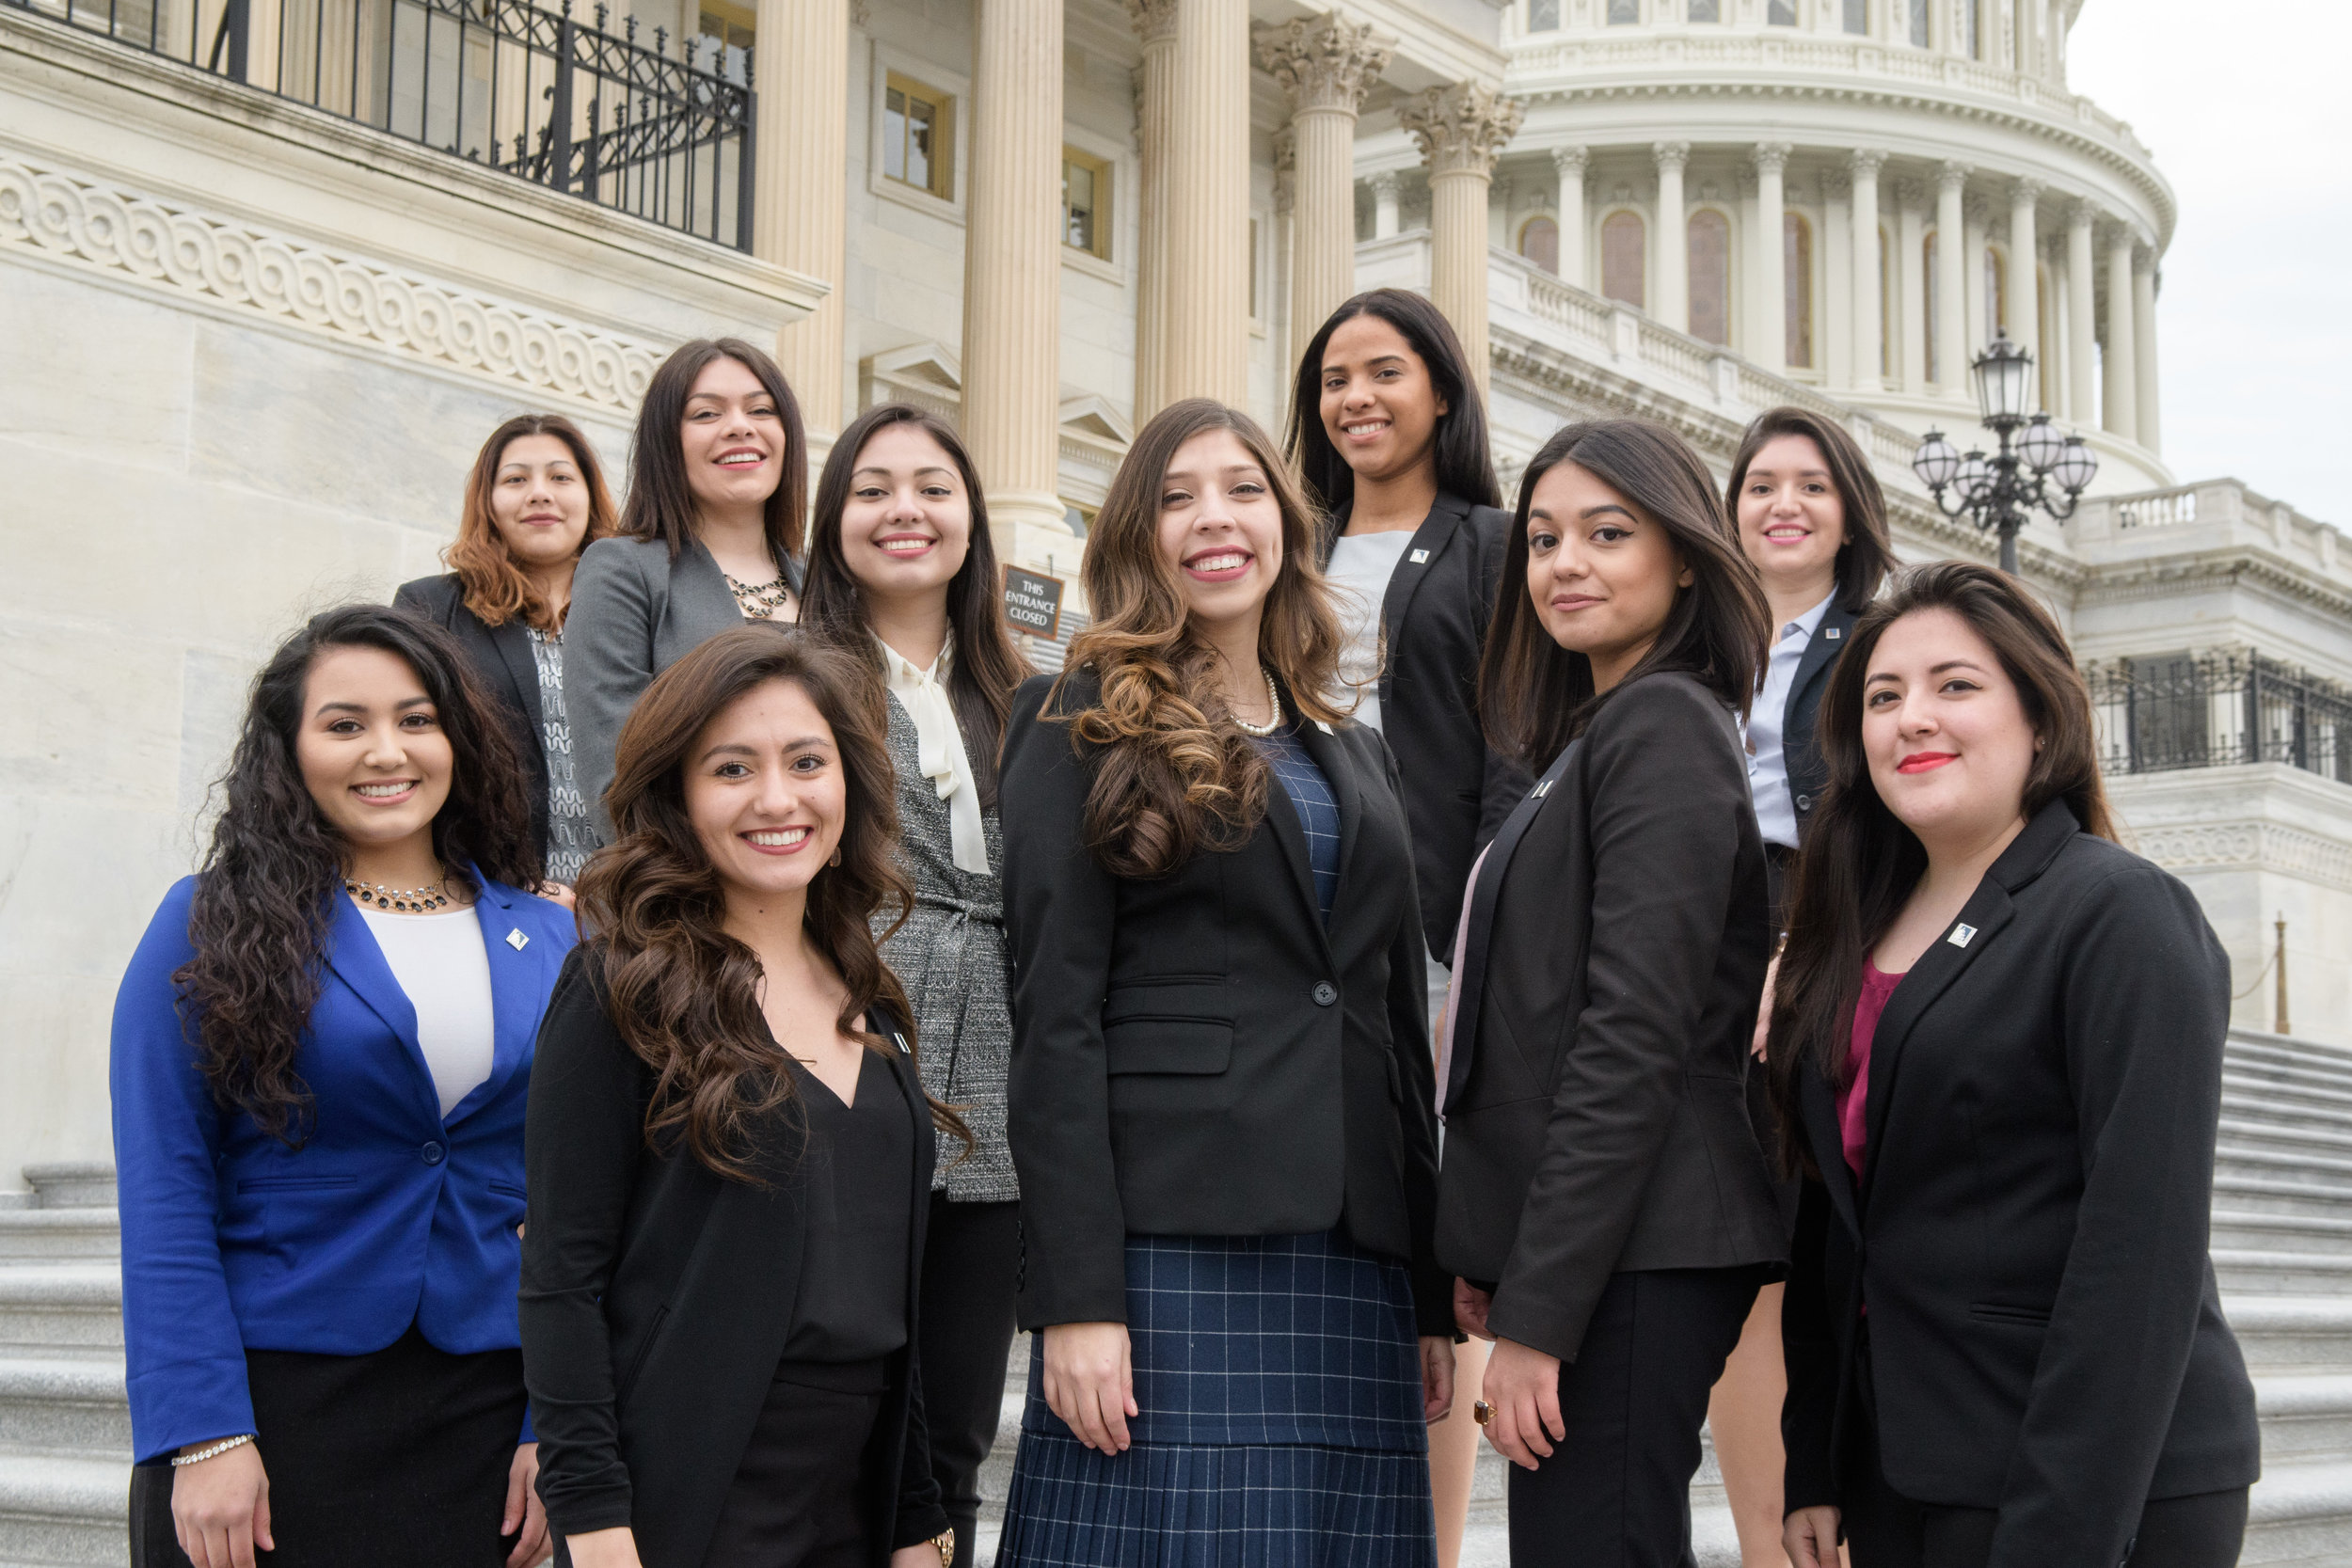 Group portrait of female interns on the steps of the US Capitol in Washington, DC for the Congressional Hispanic Caucus Institute.